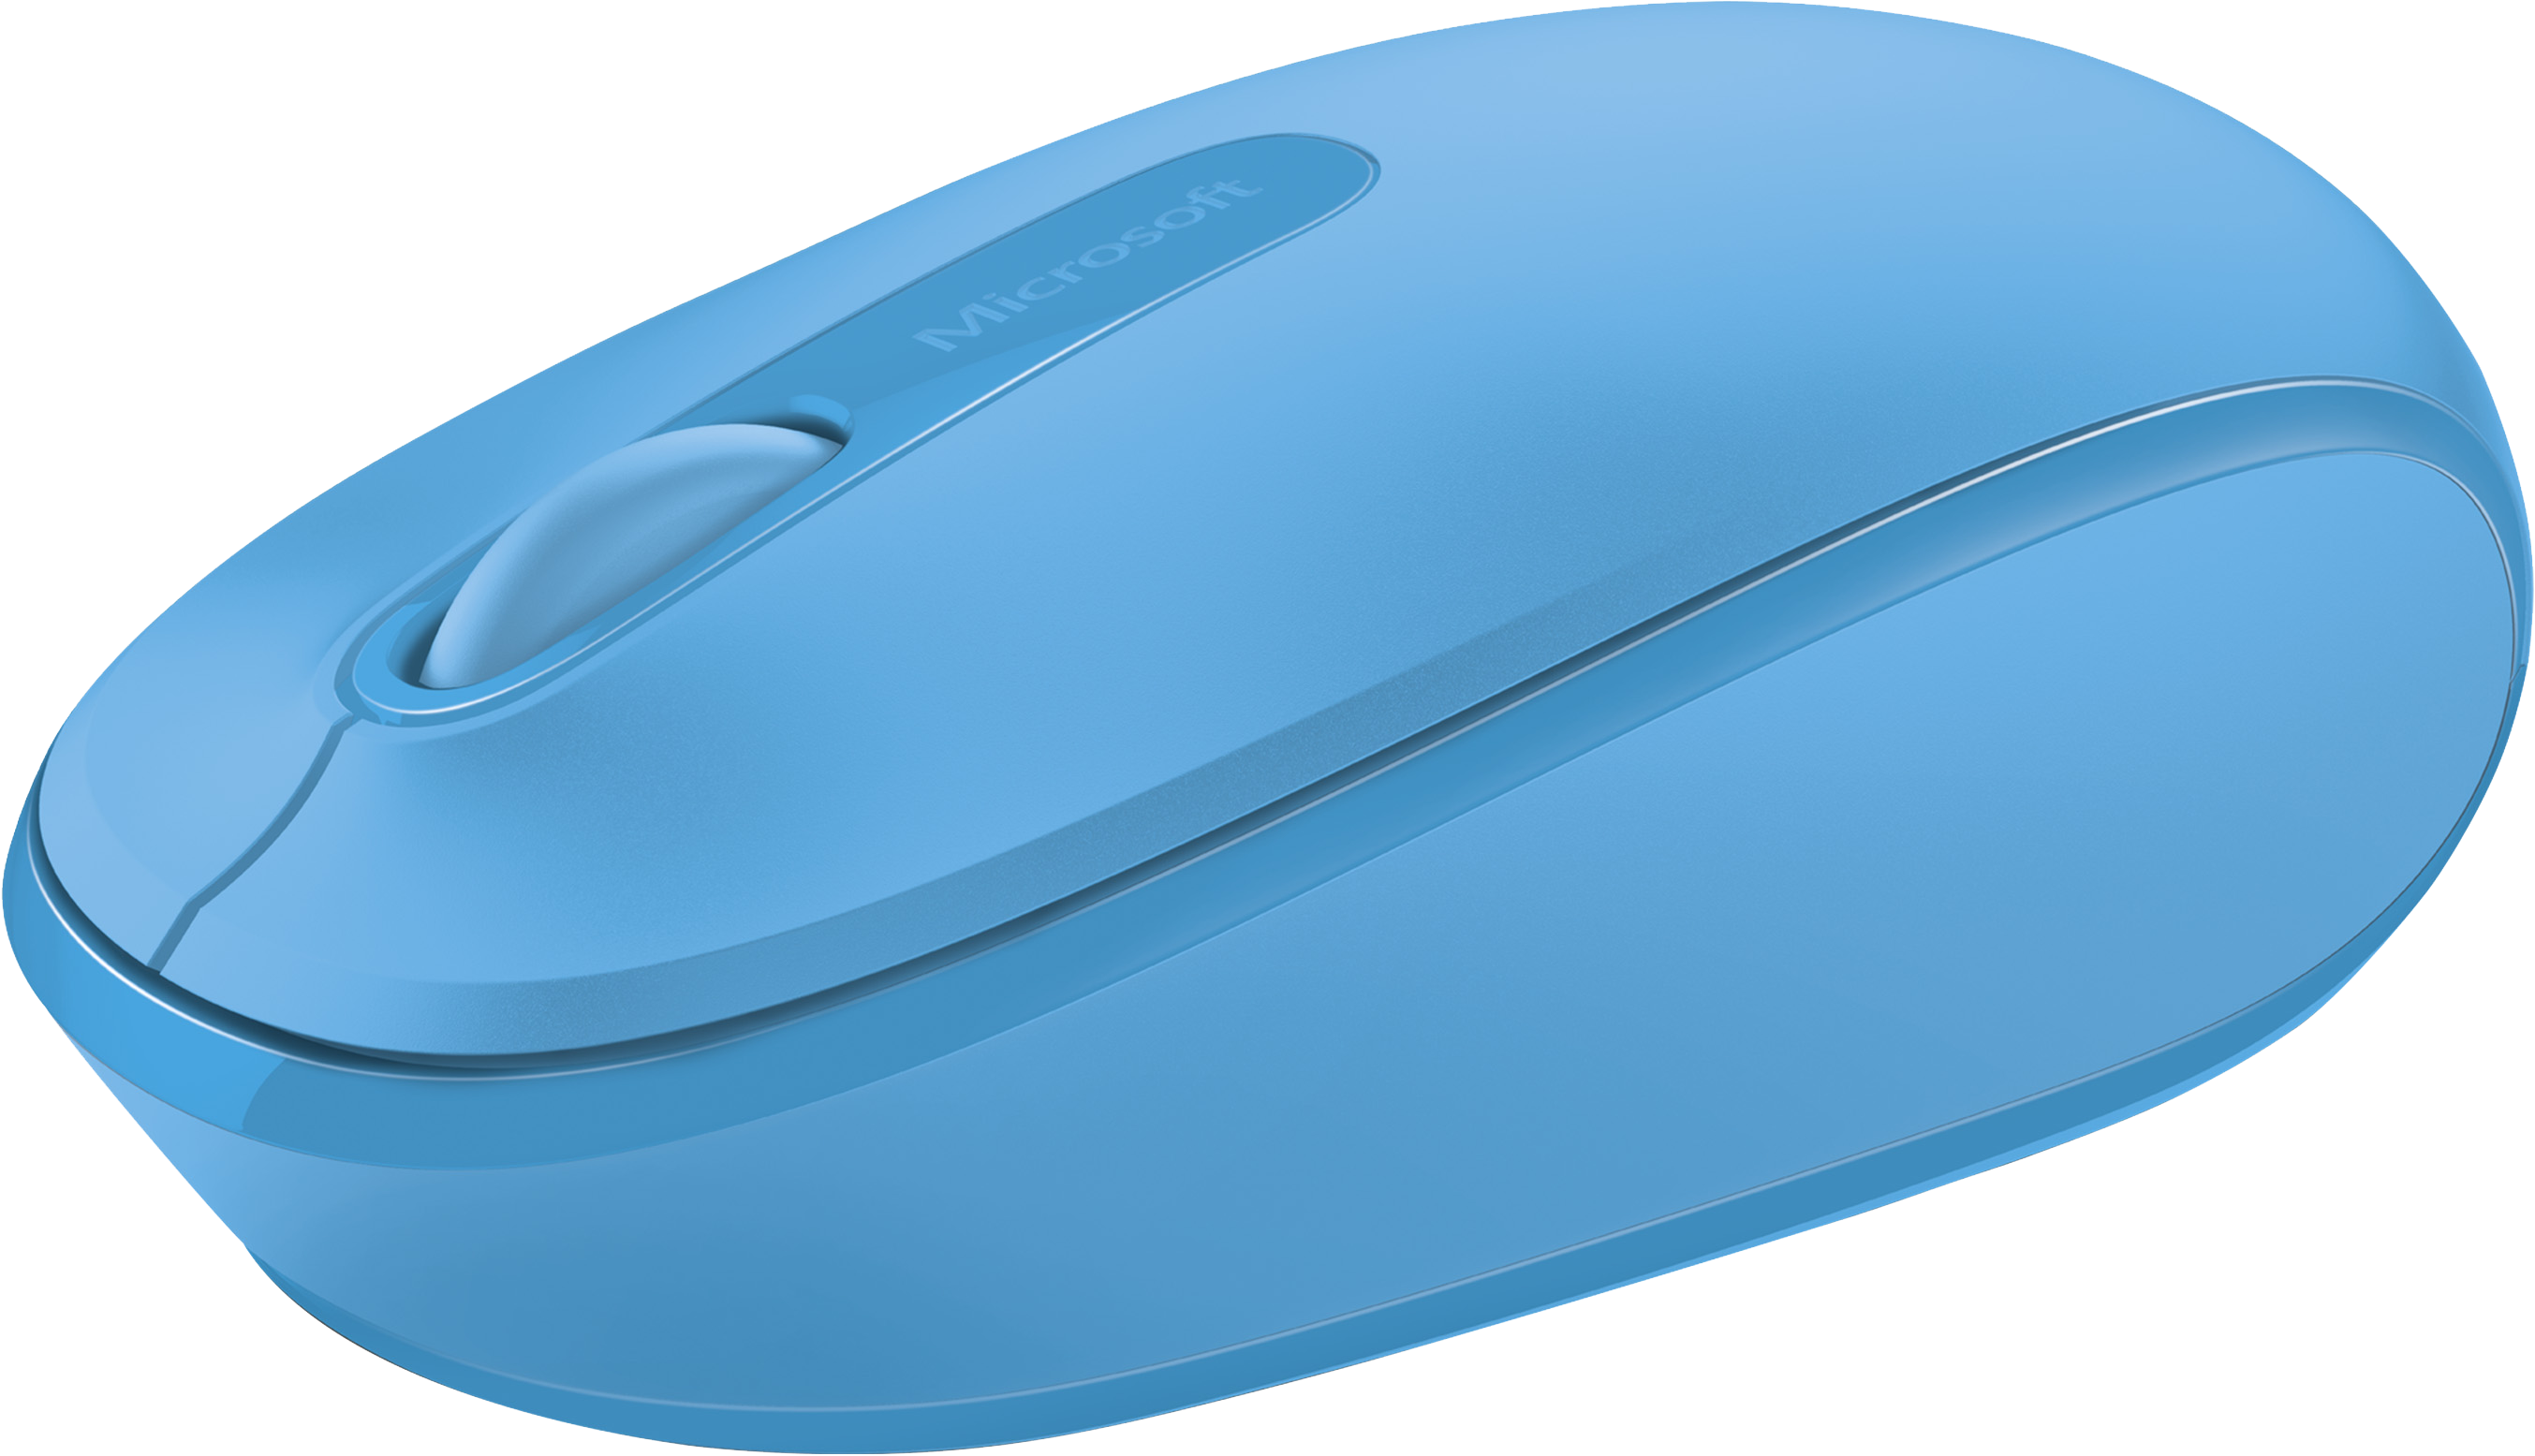 Microsoft Wireless Mobile Mouse 1850 (Cyan)